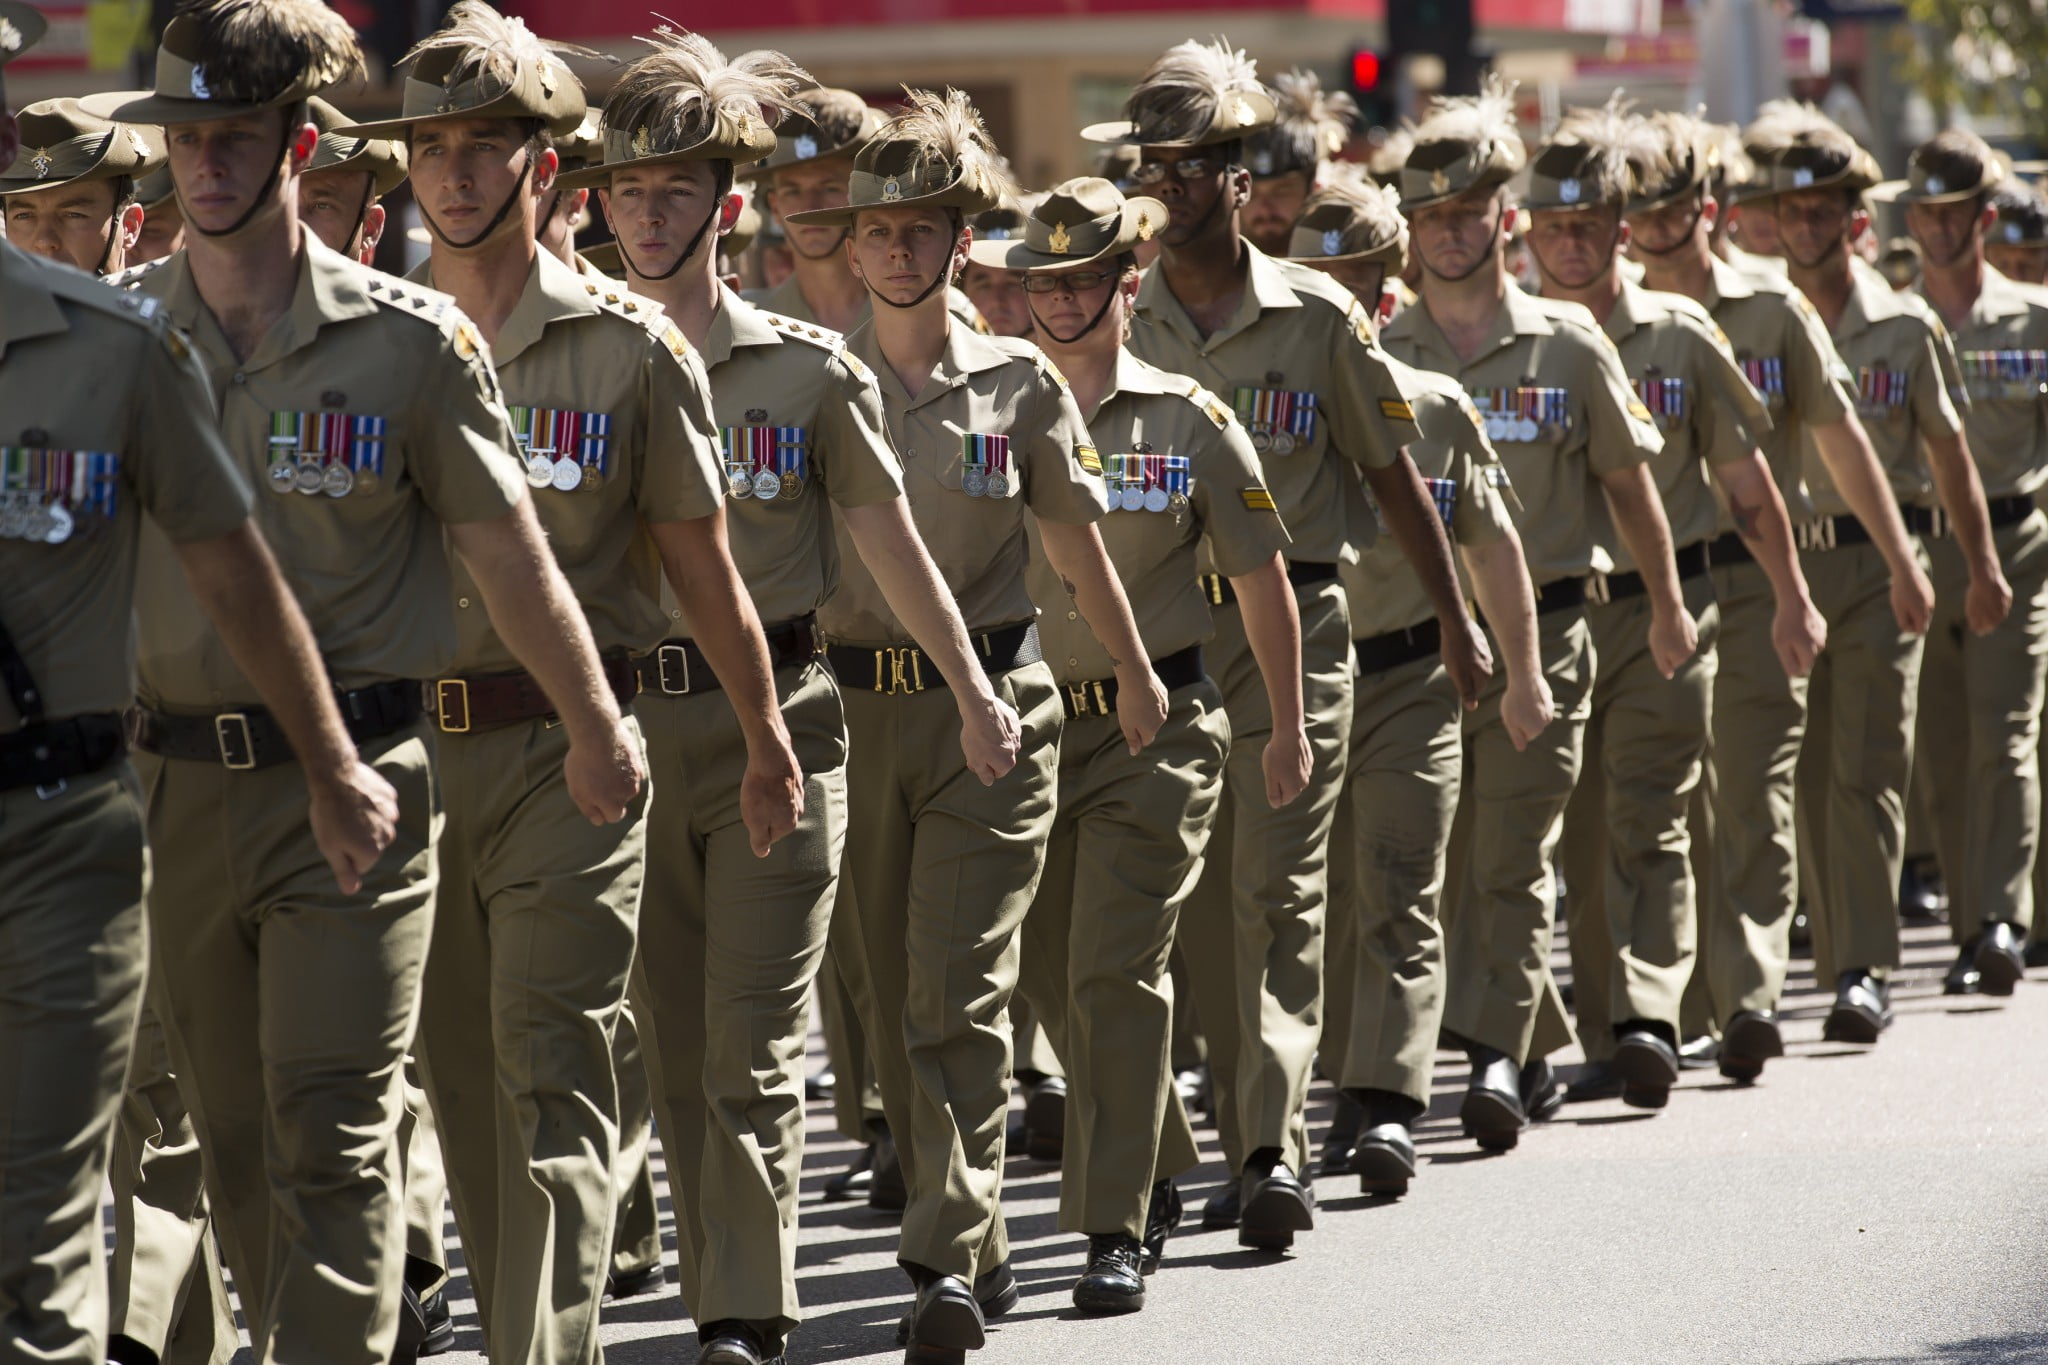 Veterans health: young diggers march in Darwin parade. Image courtesy Defence.